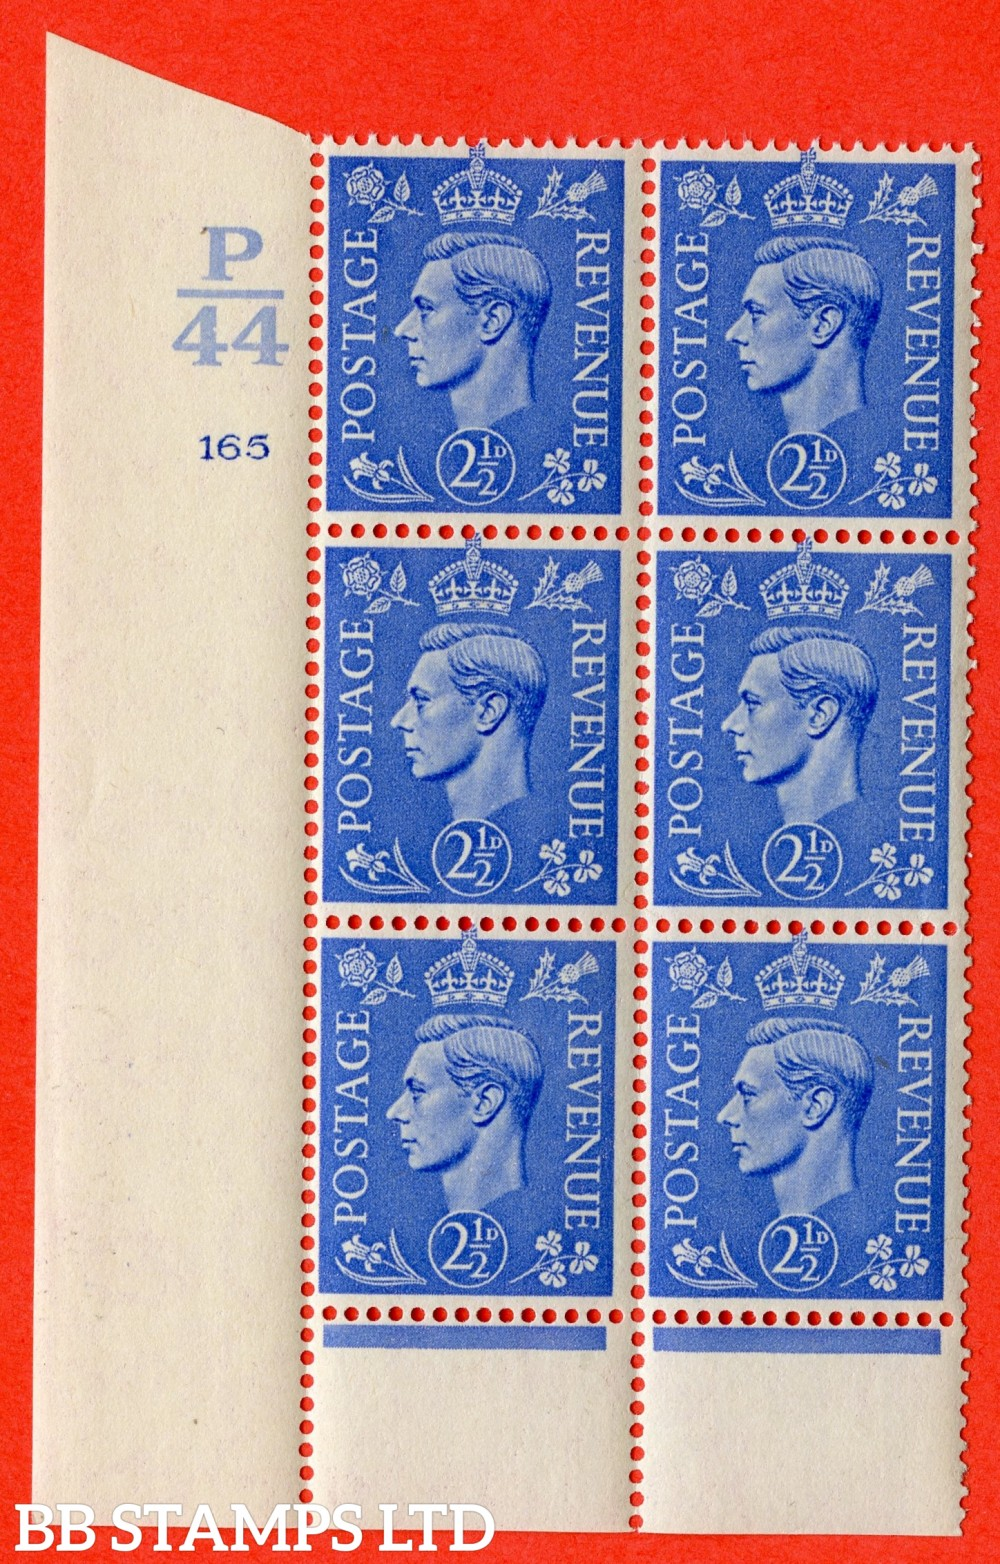 "SG. 489. Q14. 2½d Light ultramarine. A superb UNMOUNTED MINT "" Control P44 cylinder 165 no dot "" control block of 6 with perf type 6 I/P."